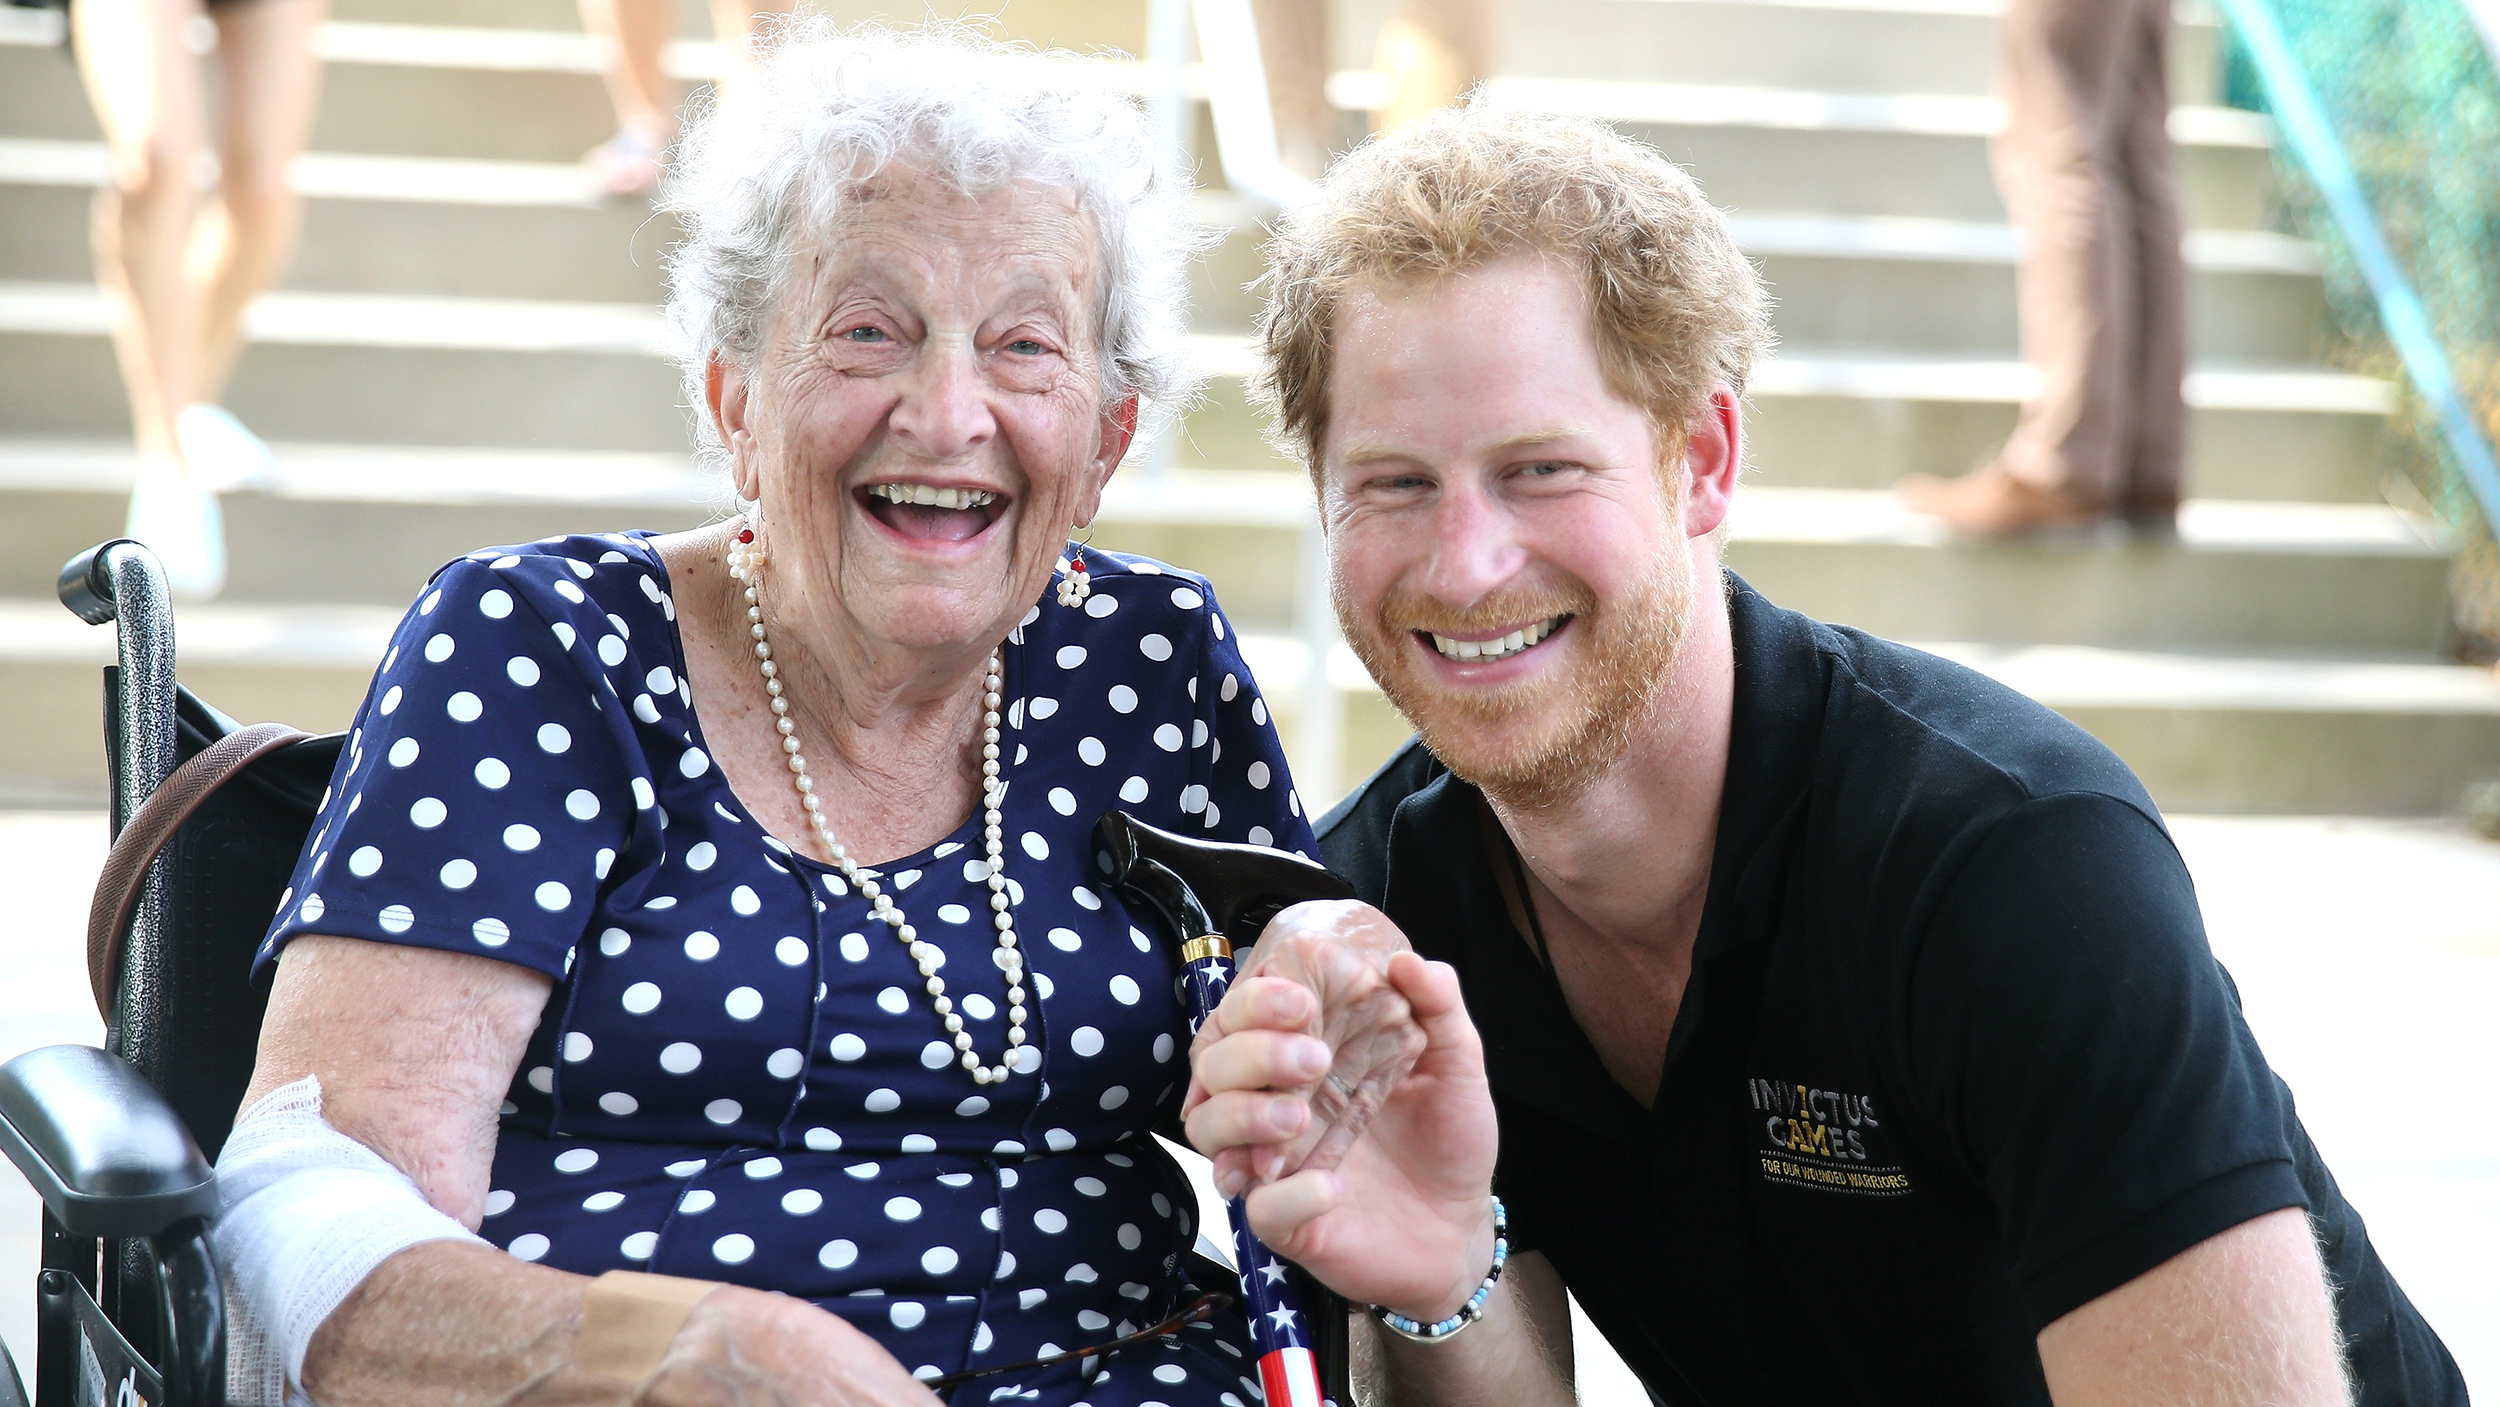 Sweet prince! Harry kisses hand of elderly fan at Invictus Games - TODAY.com